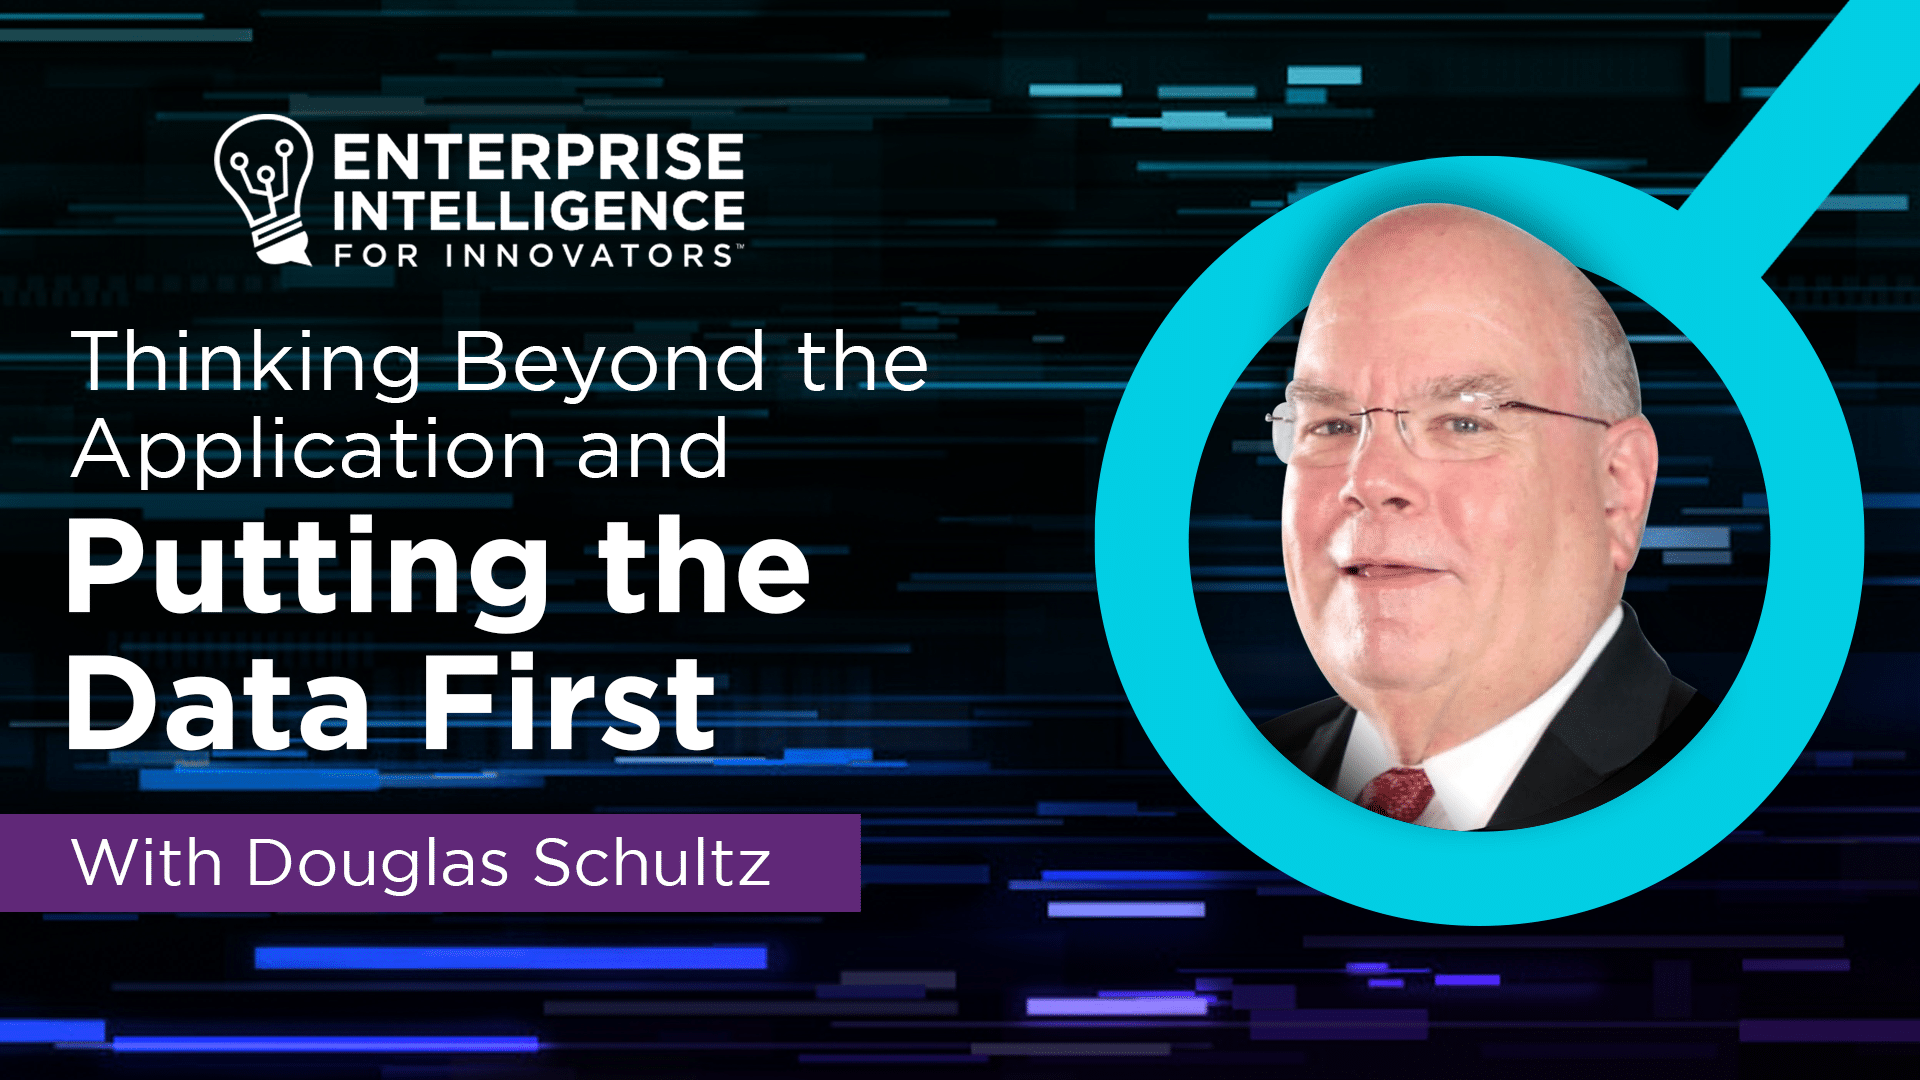 Episode 7: Douglas Schultz, Thinking Beyond the Application and Putting the Data First.